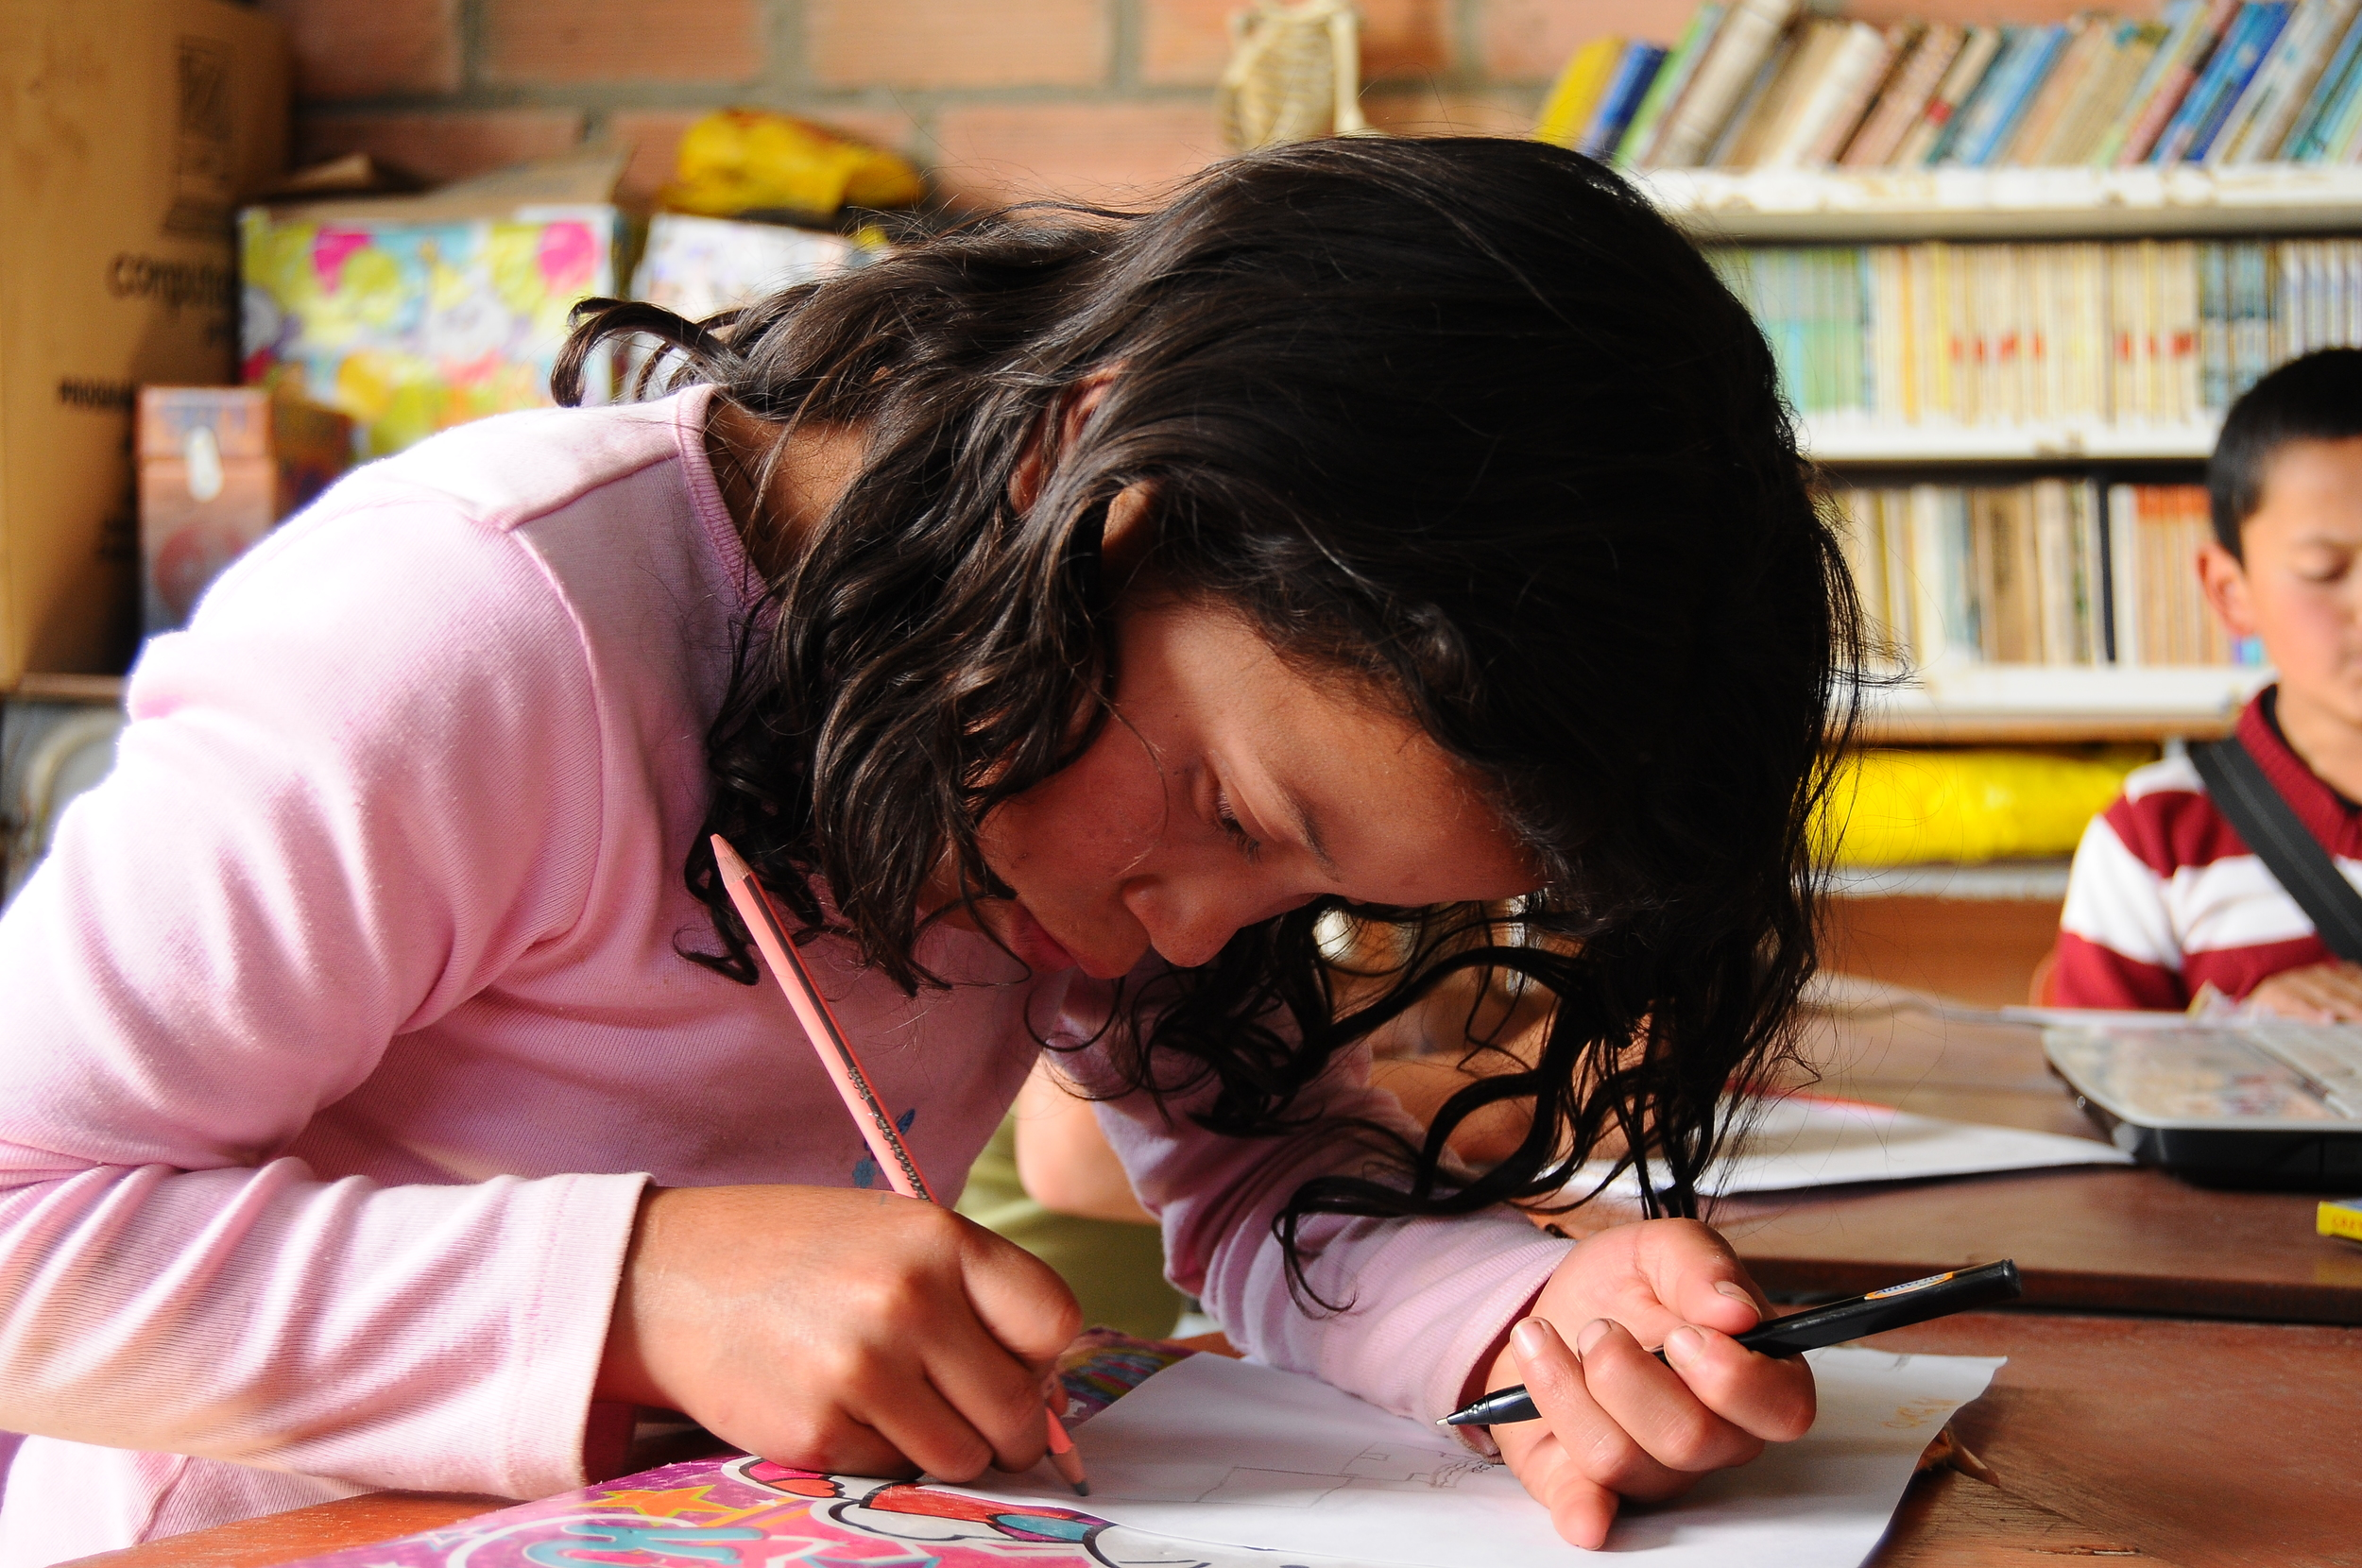 An important condition for being part of Nukanti's Child Mentoring Program is to attend school regularly.